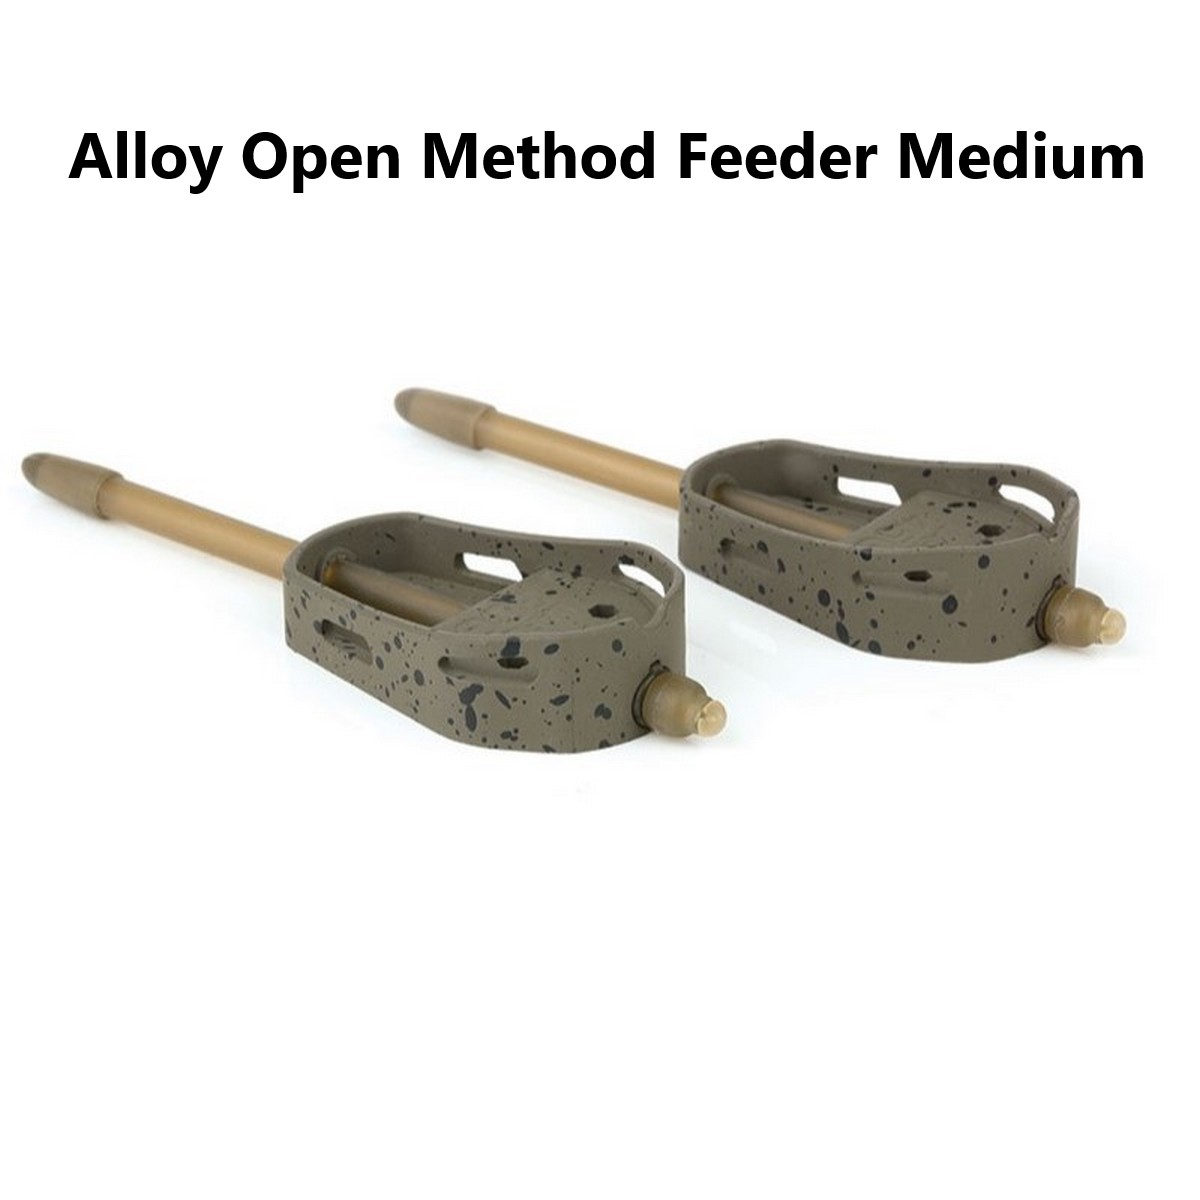 Фидер хранилка Matrix Alloy Open Method Feeder Medium